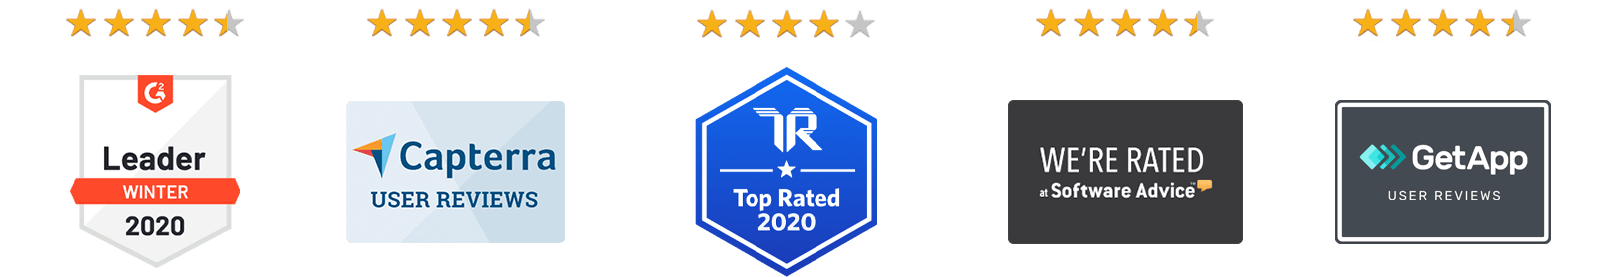 SharpSpring review site ratings image